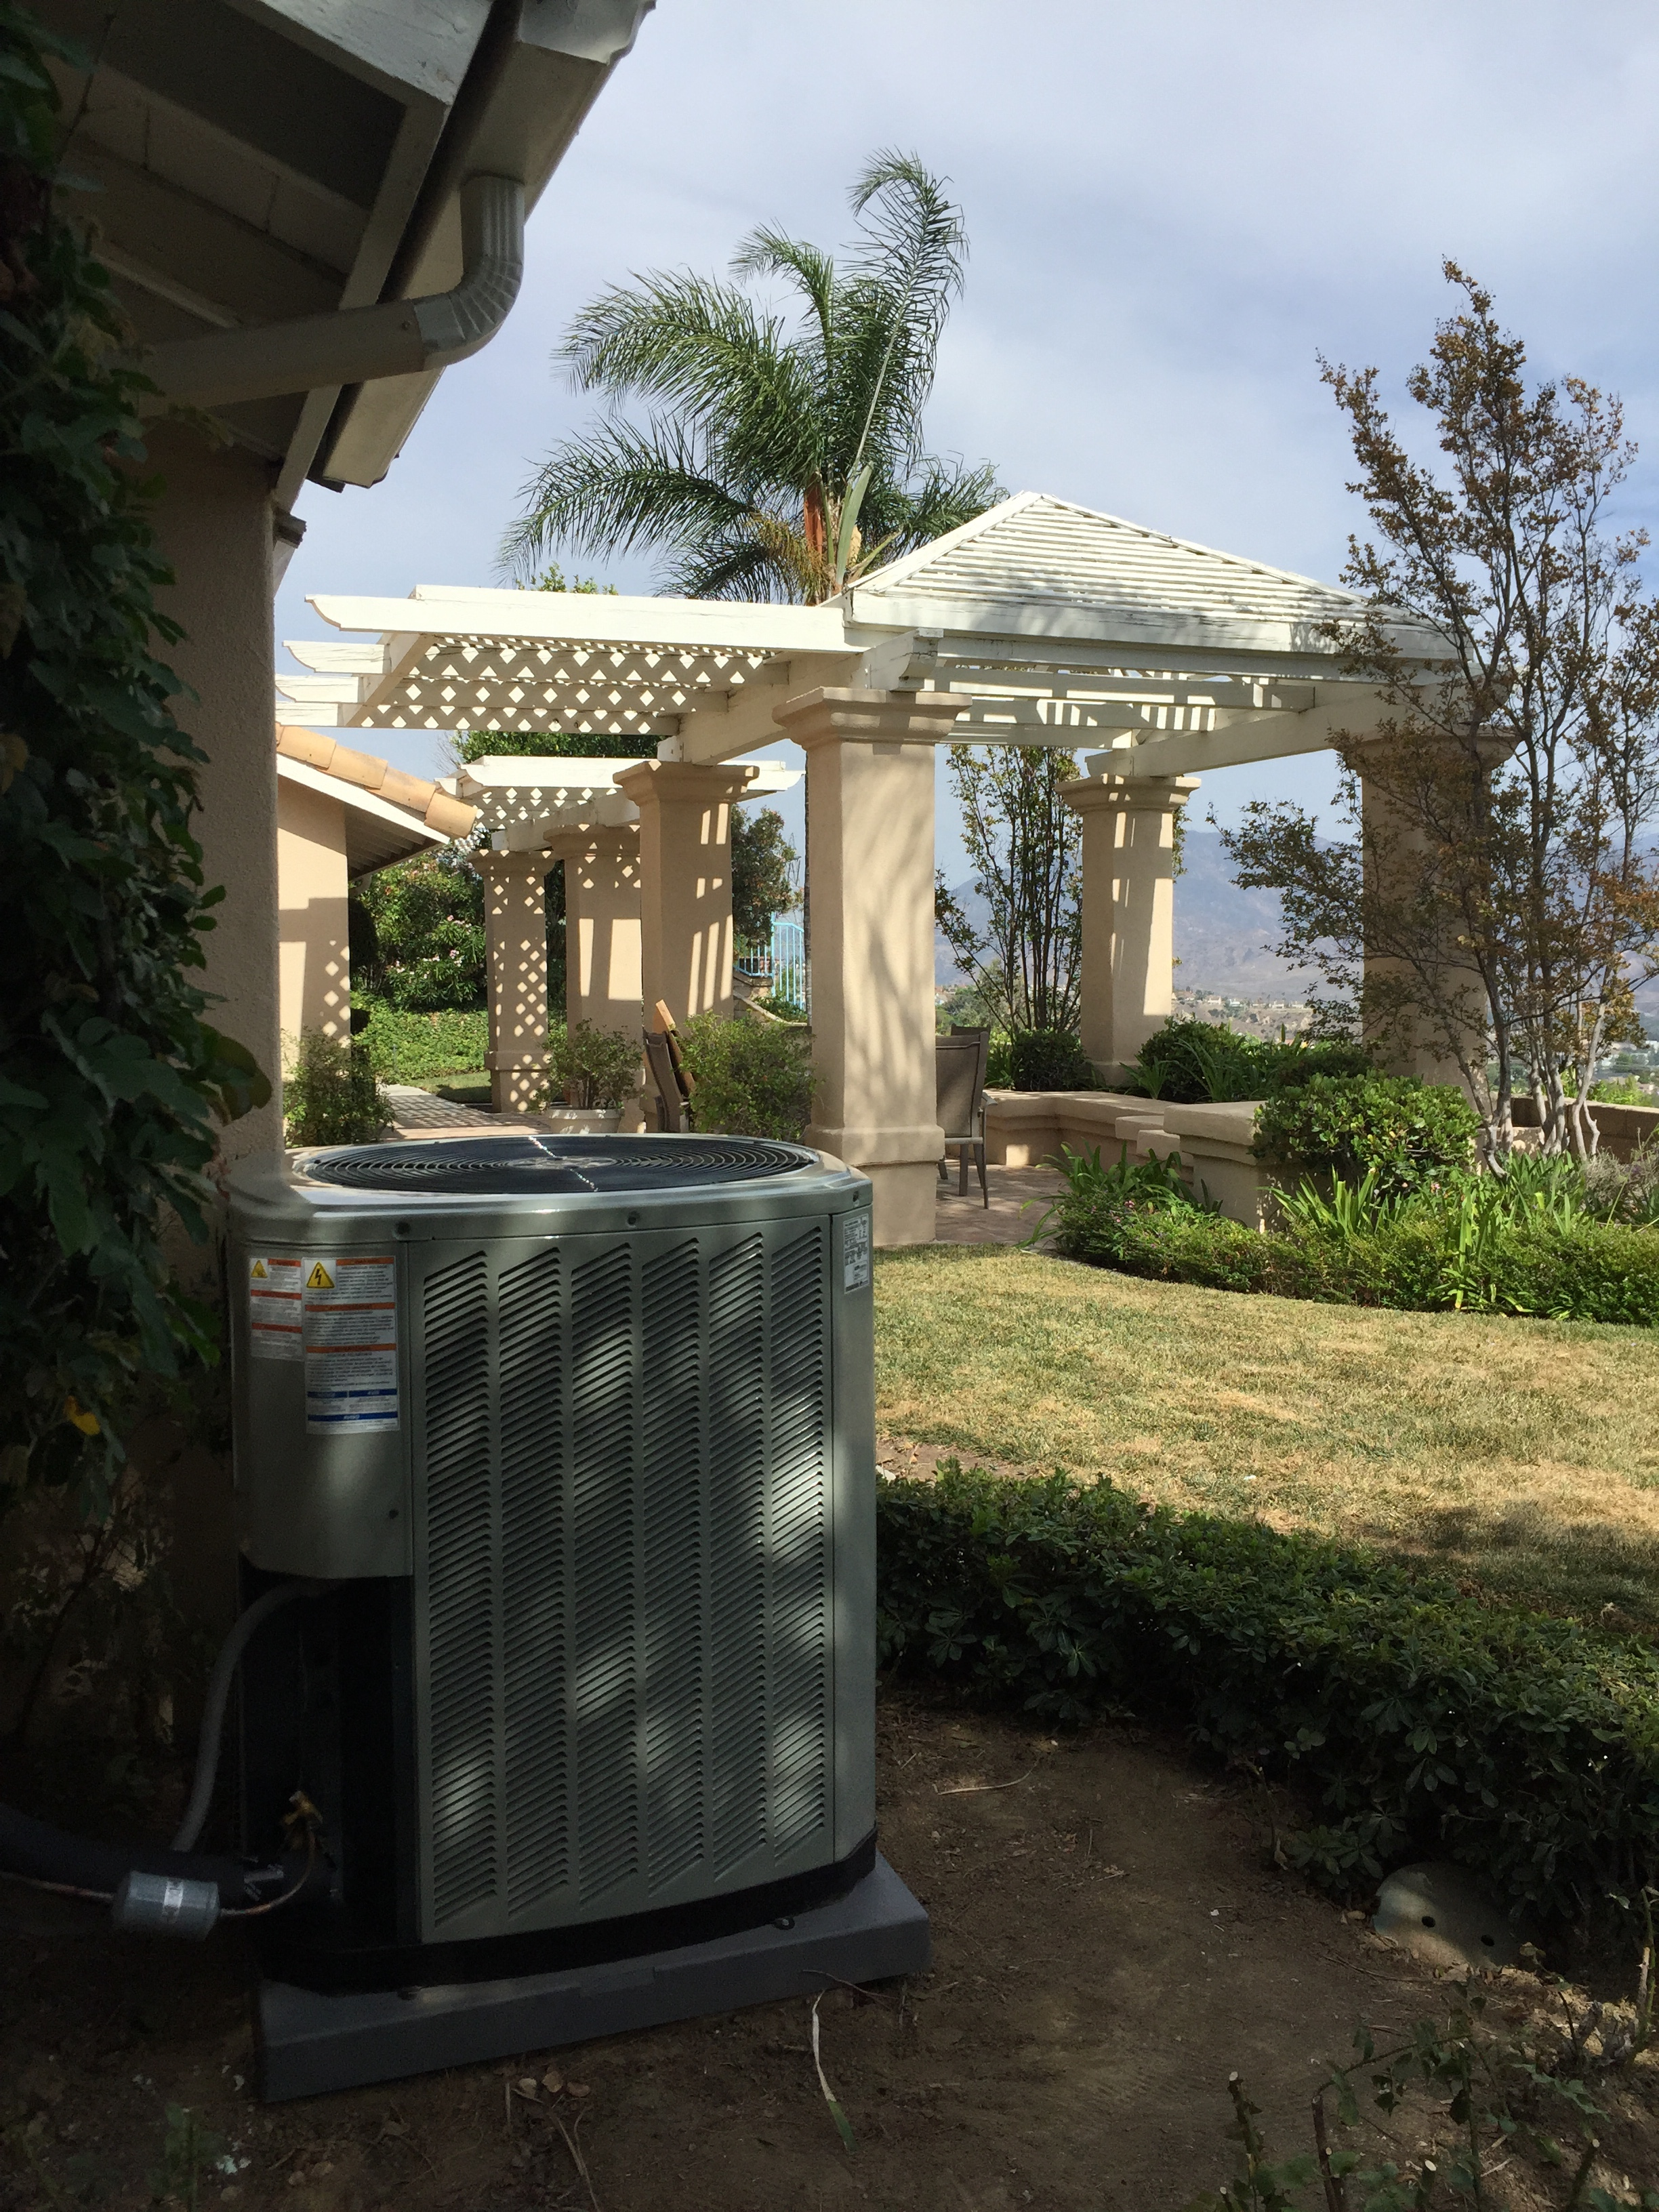 Affordable Heating & AC-same day